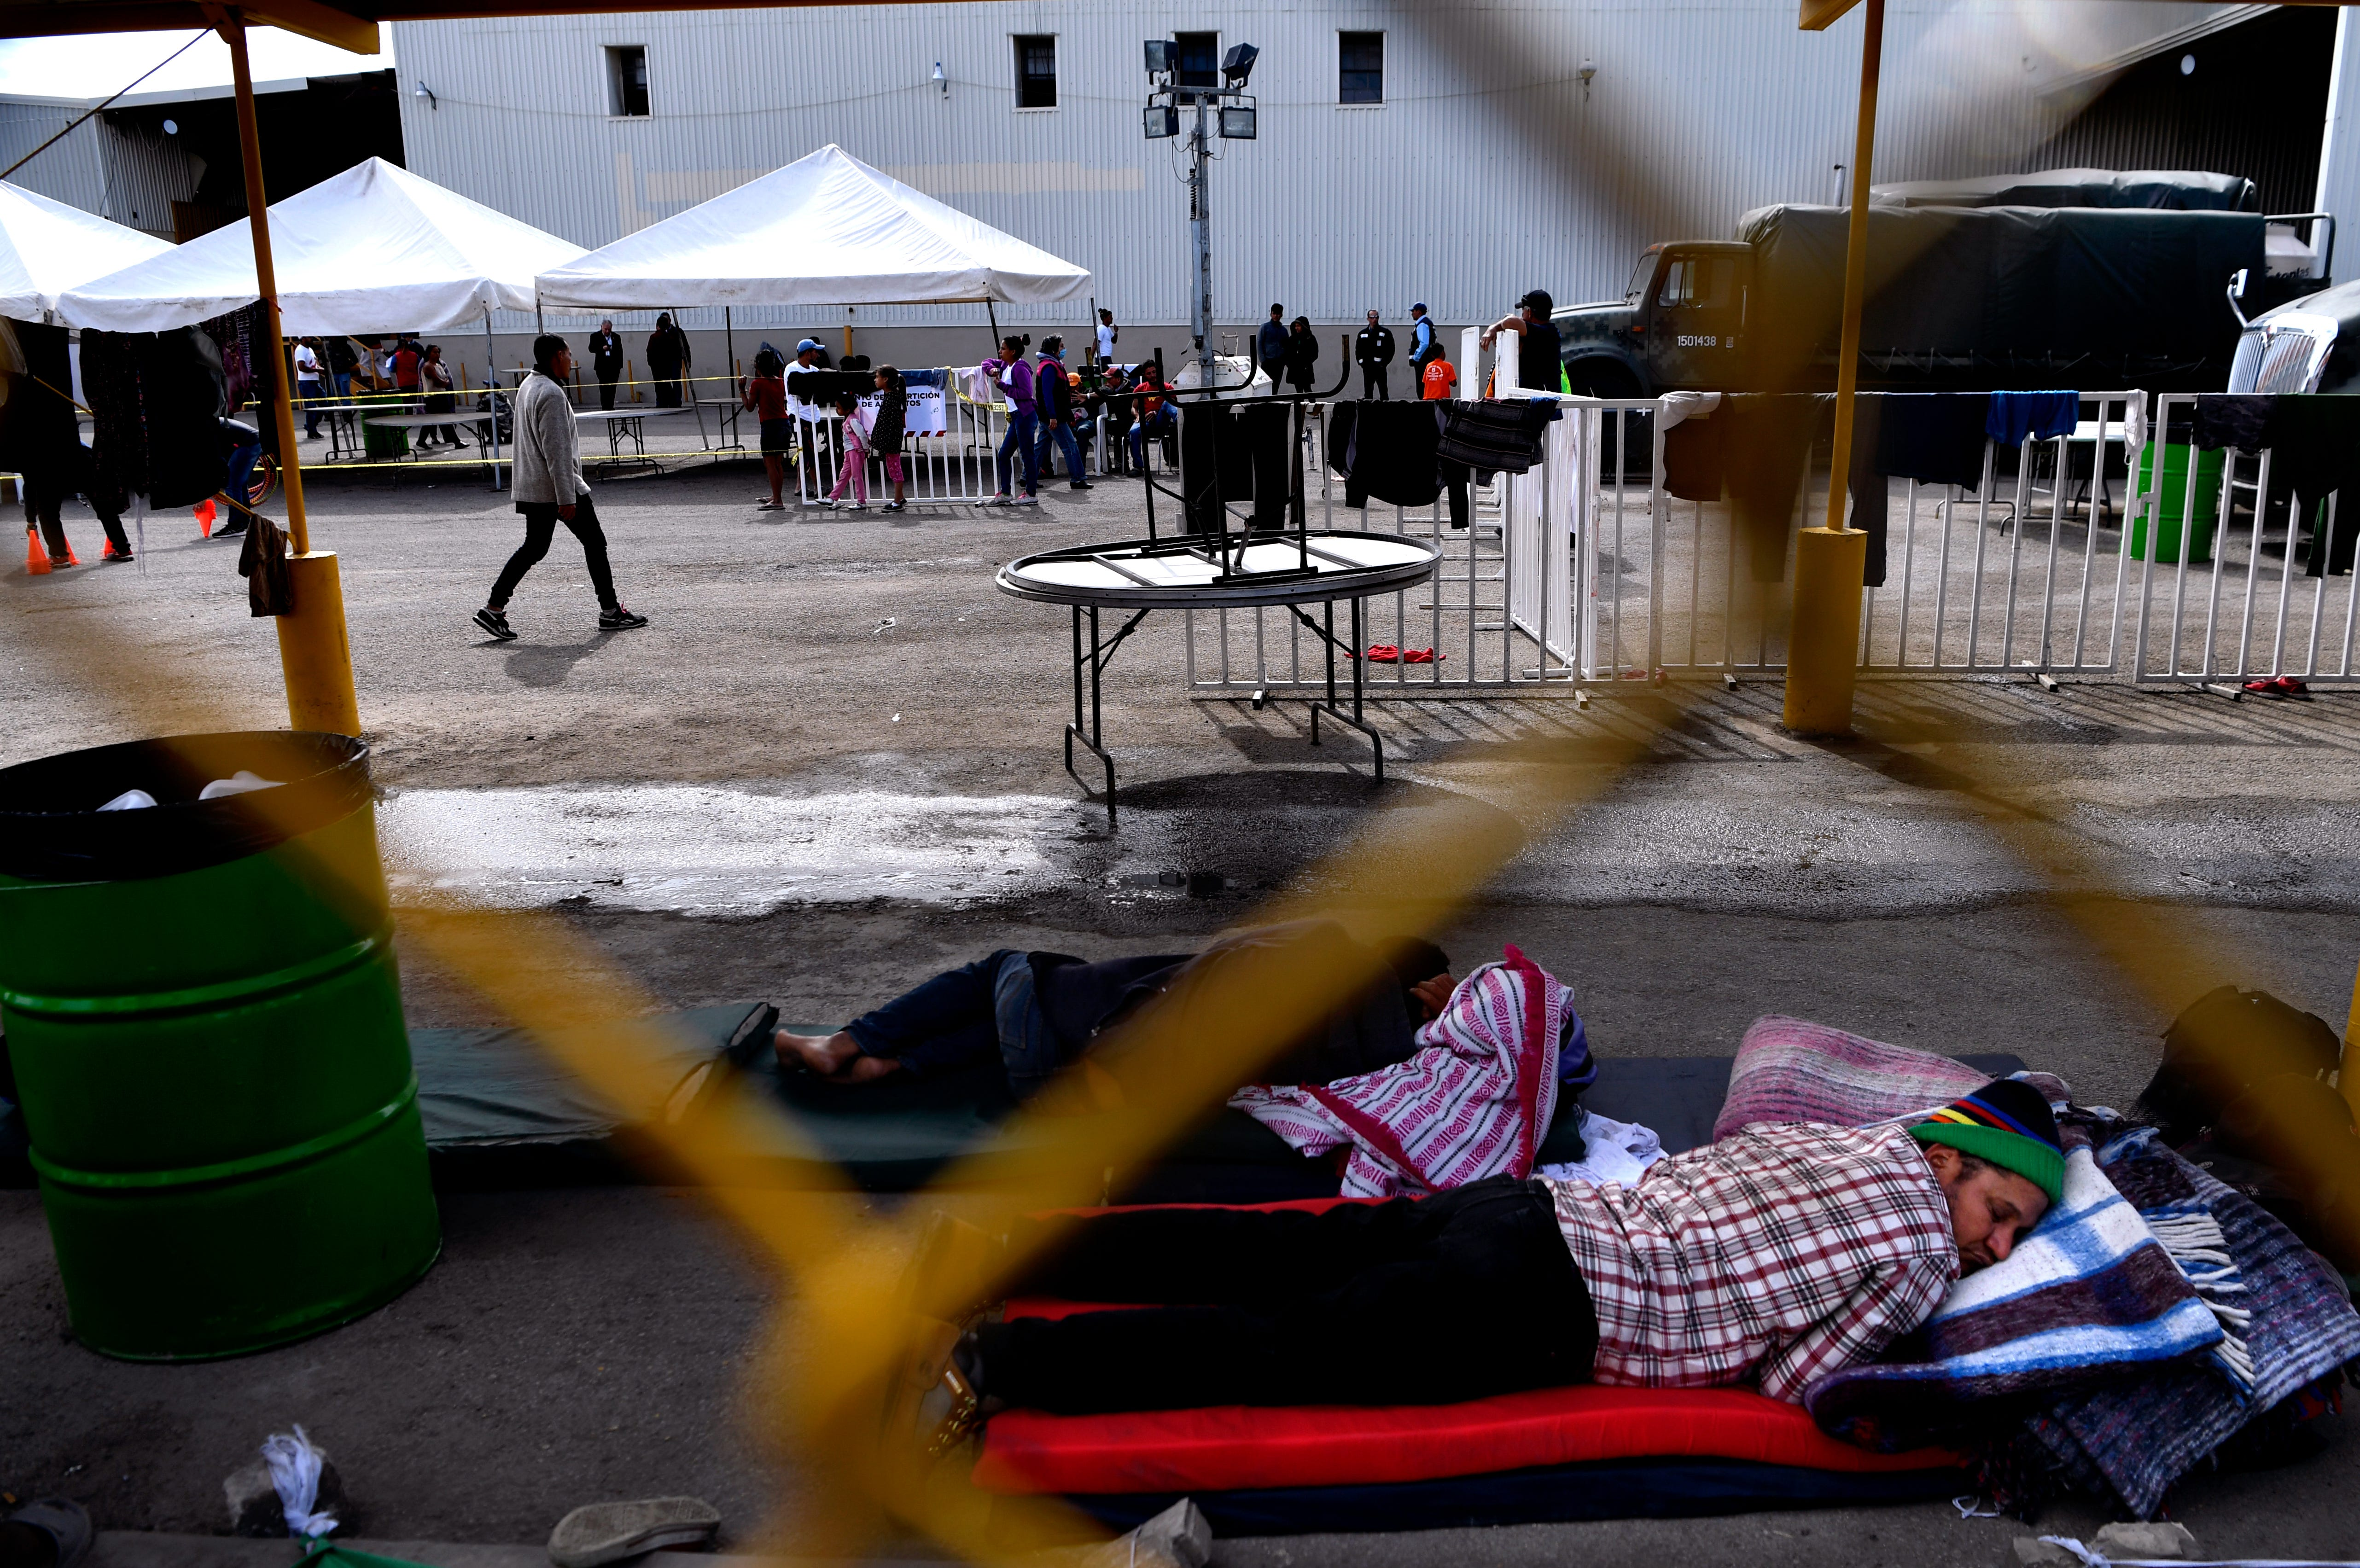 Men sleep on mattresses behind the chainlink fence surrounding the Migrant Hostel in Piedras Negras, Mexico Thursday Feb. 7, 2019. The former factory is said to have been converted into sleeping quarters inside, though some have set up tents made of blankets in the outdoor common area, too.